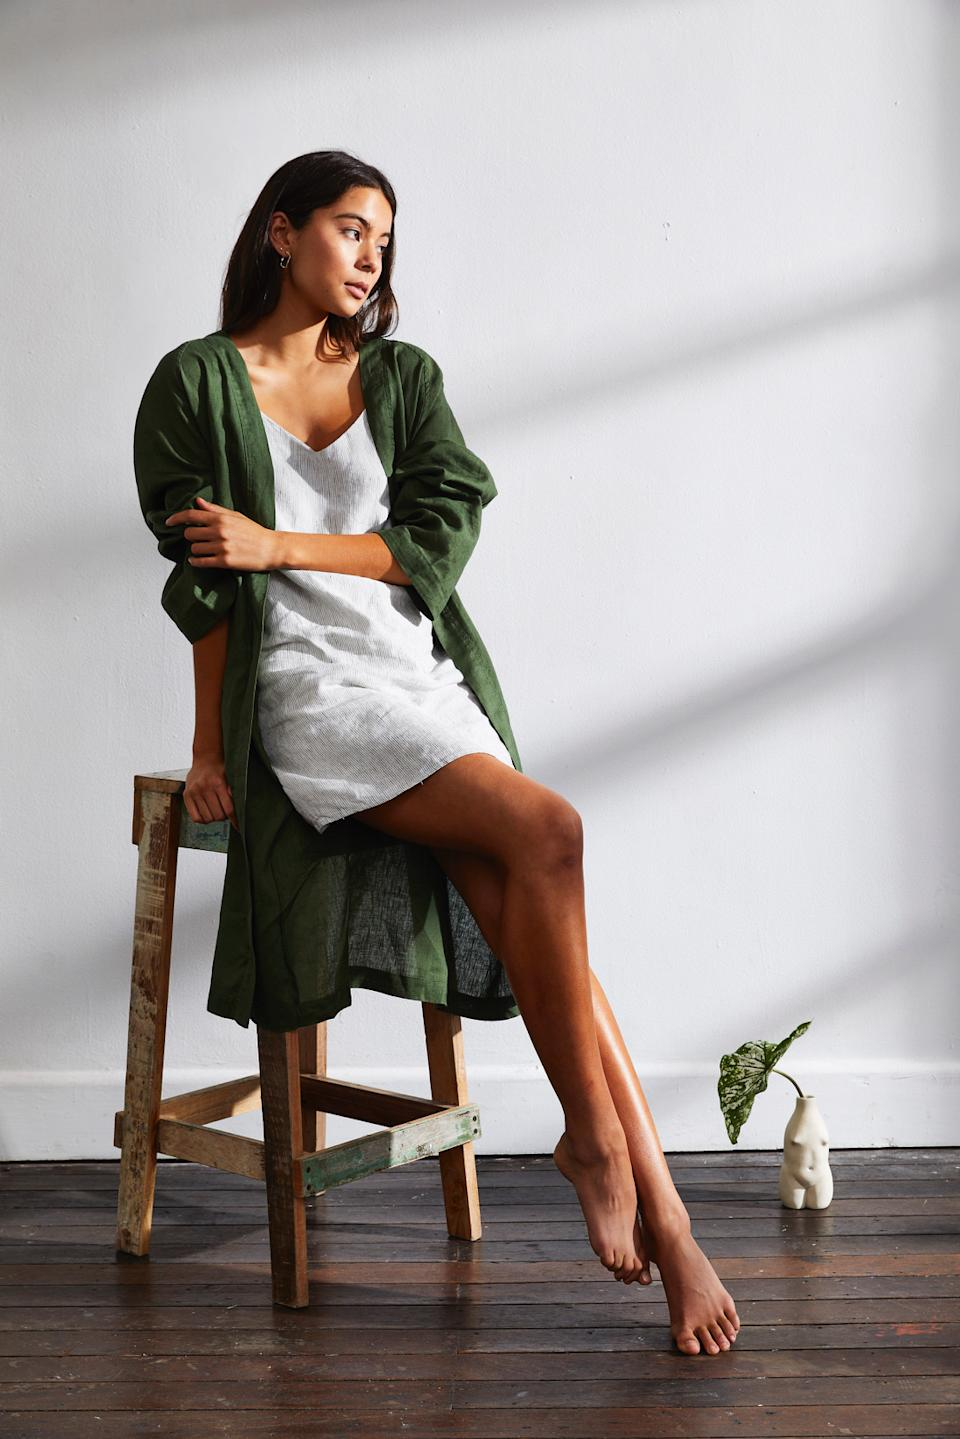 100% French Flax Linen Slip in Pinstripe, $80 and 100% French Flax Linen Robe in Olive, $100 from Threads by Bed Threads